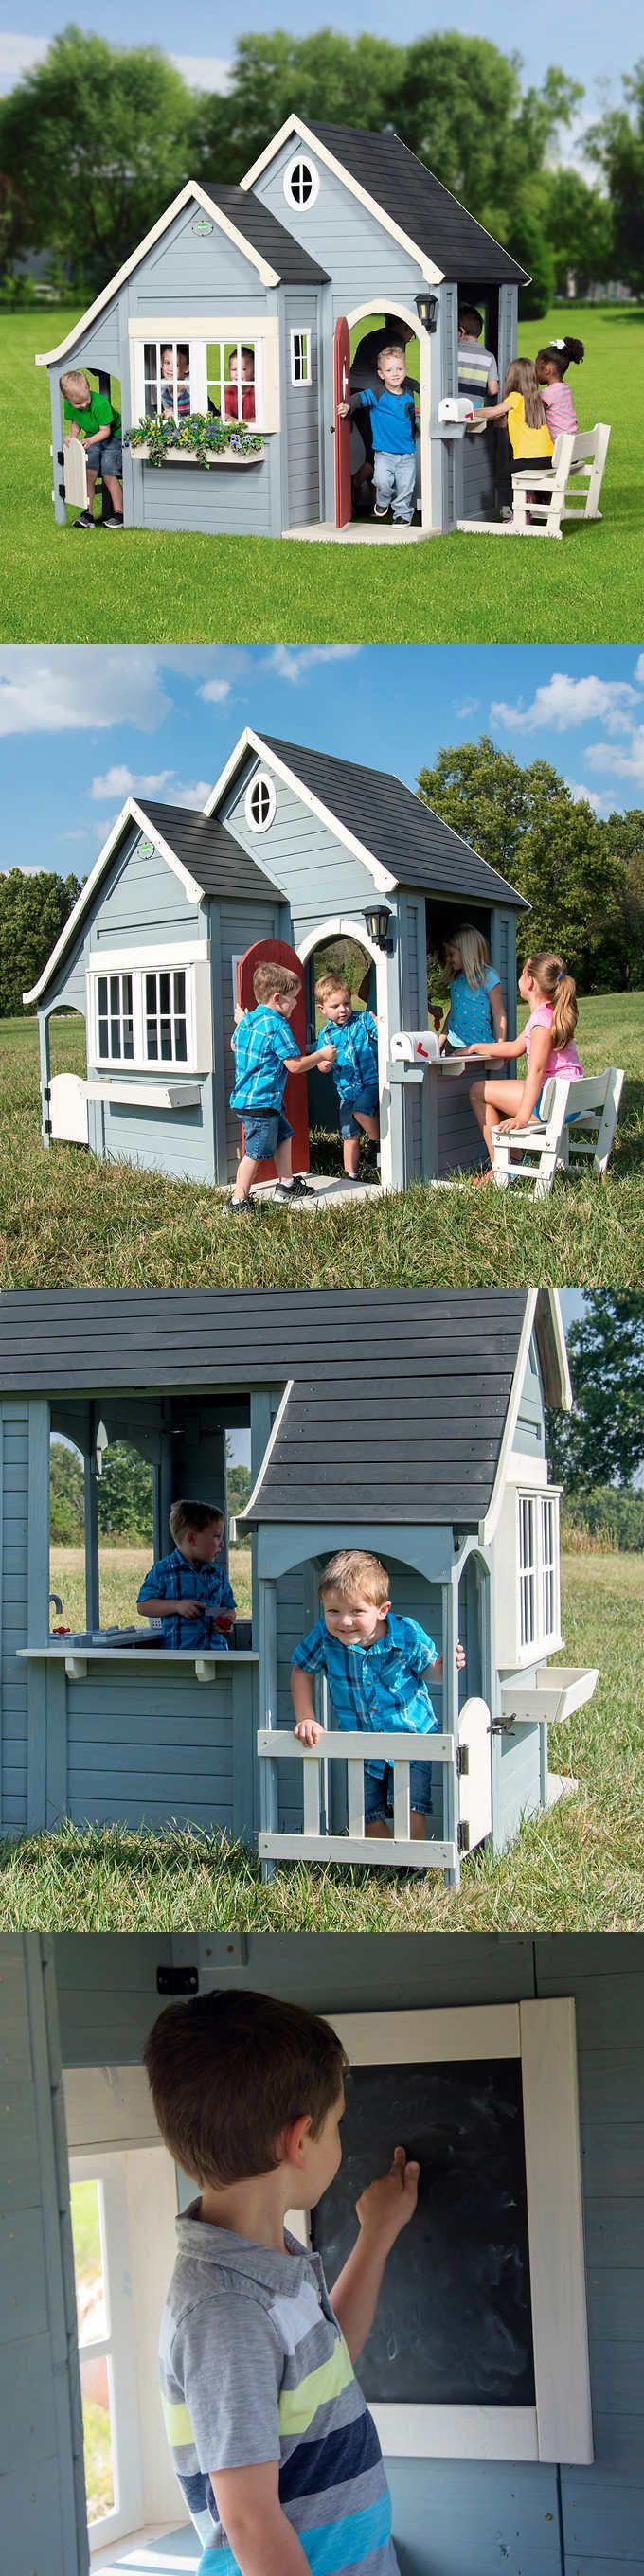 Permanent Playhouses 145995: Backyard Discovery Spring ...